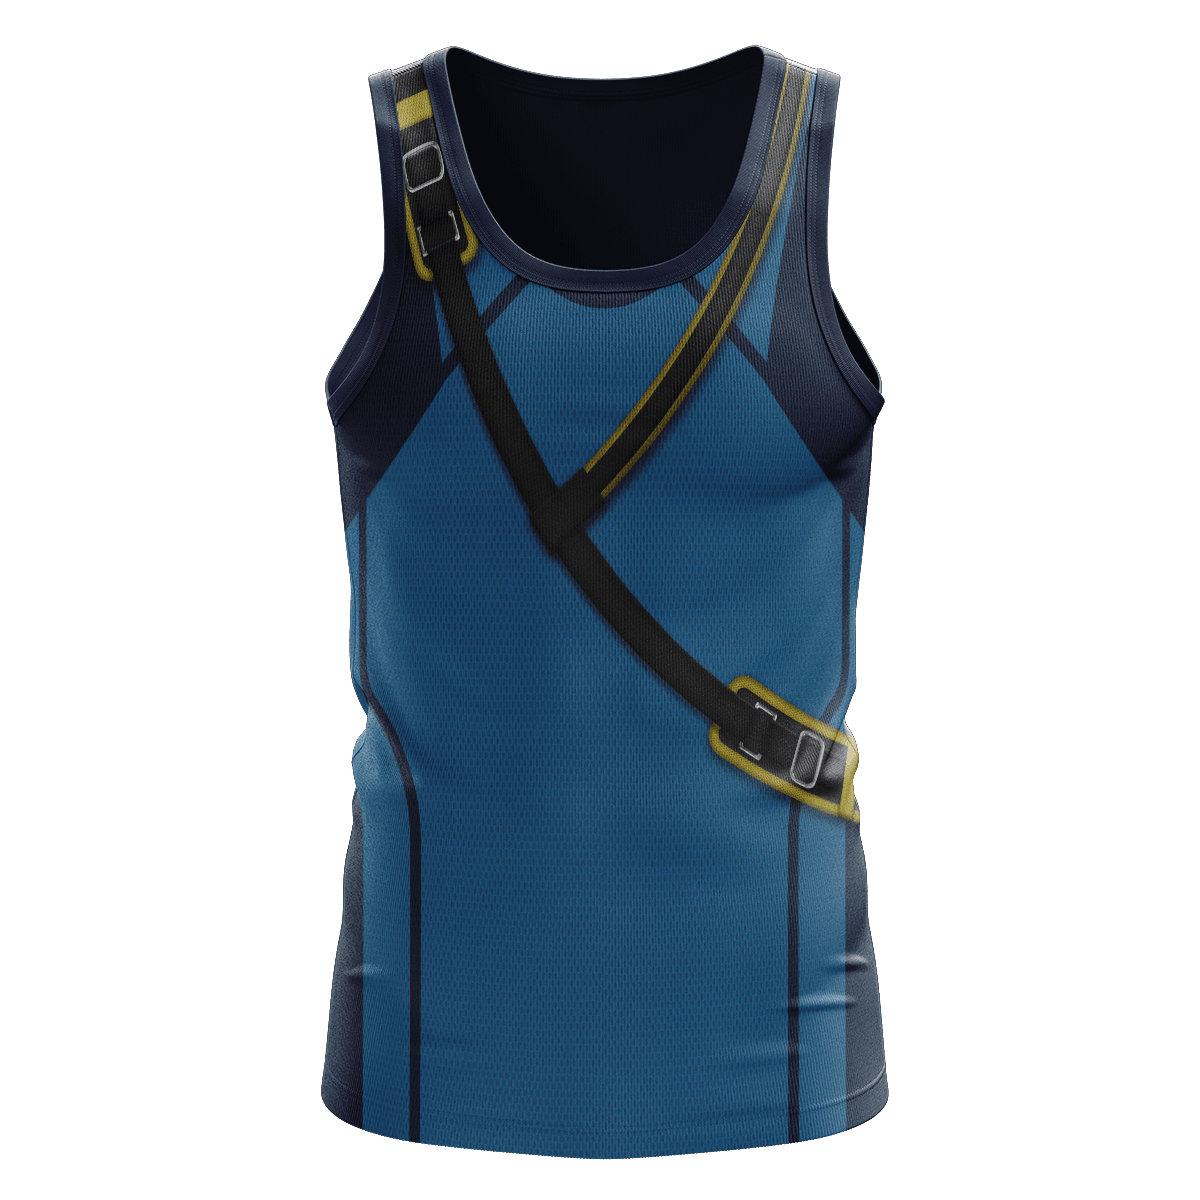 Shadow of the Tomb Raider Unisex Tank Tops FDM3107 S Official Anime Swimsuit Merch